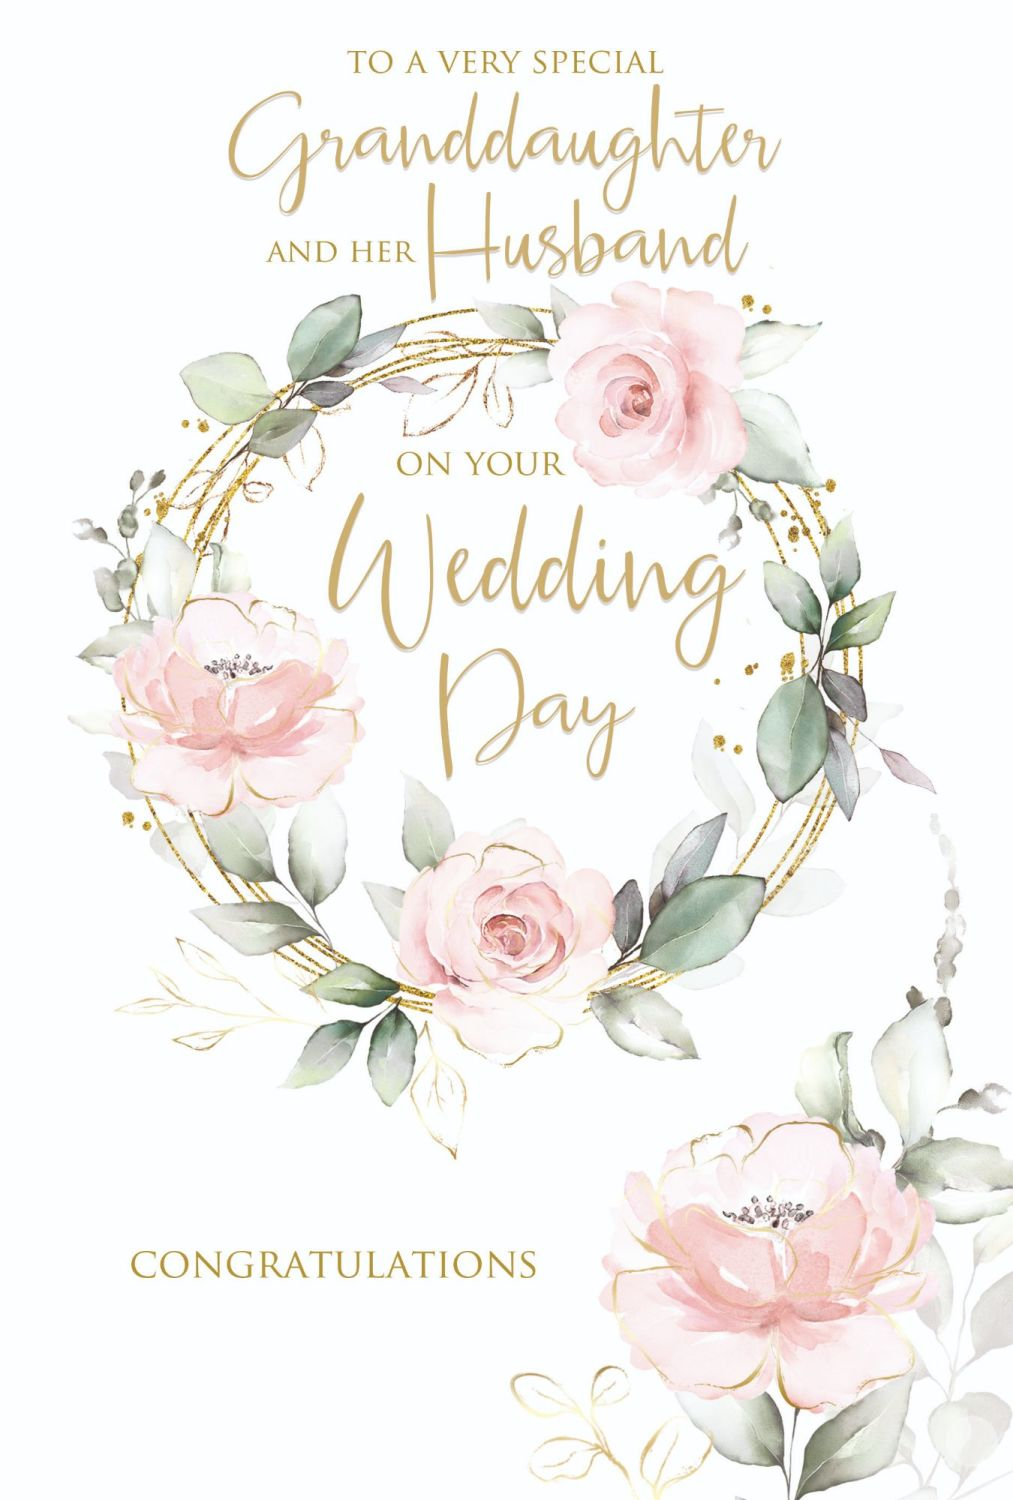 Granddaughter & Husband Wedding Day Cards - TO A Very SPECIAL Granddaughter